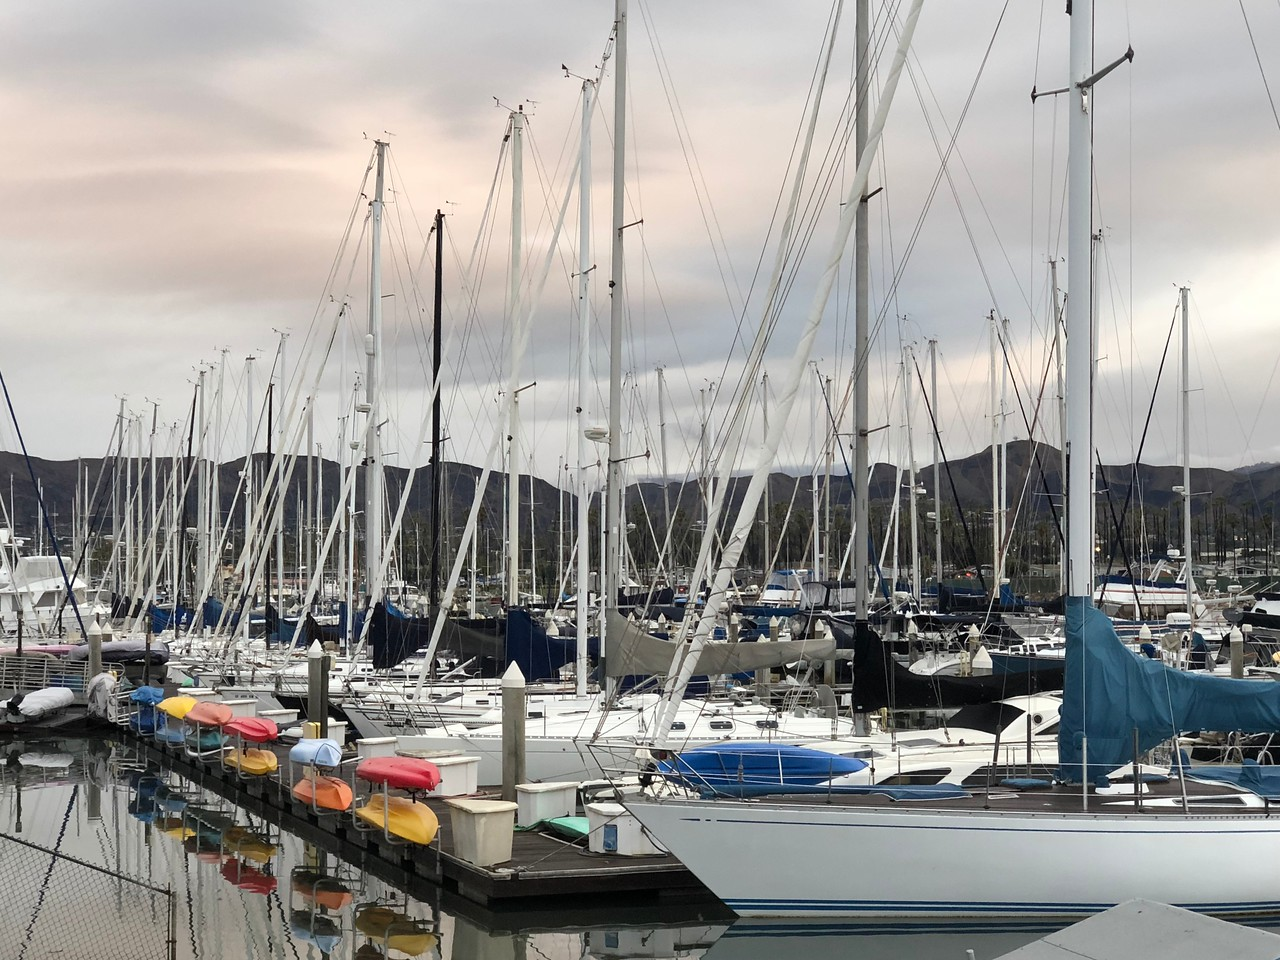 The marina from which we set sail fr the Channel Islands.